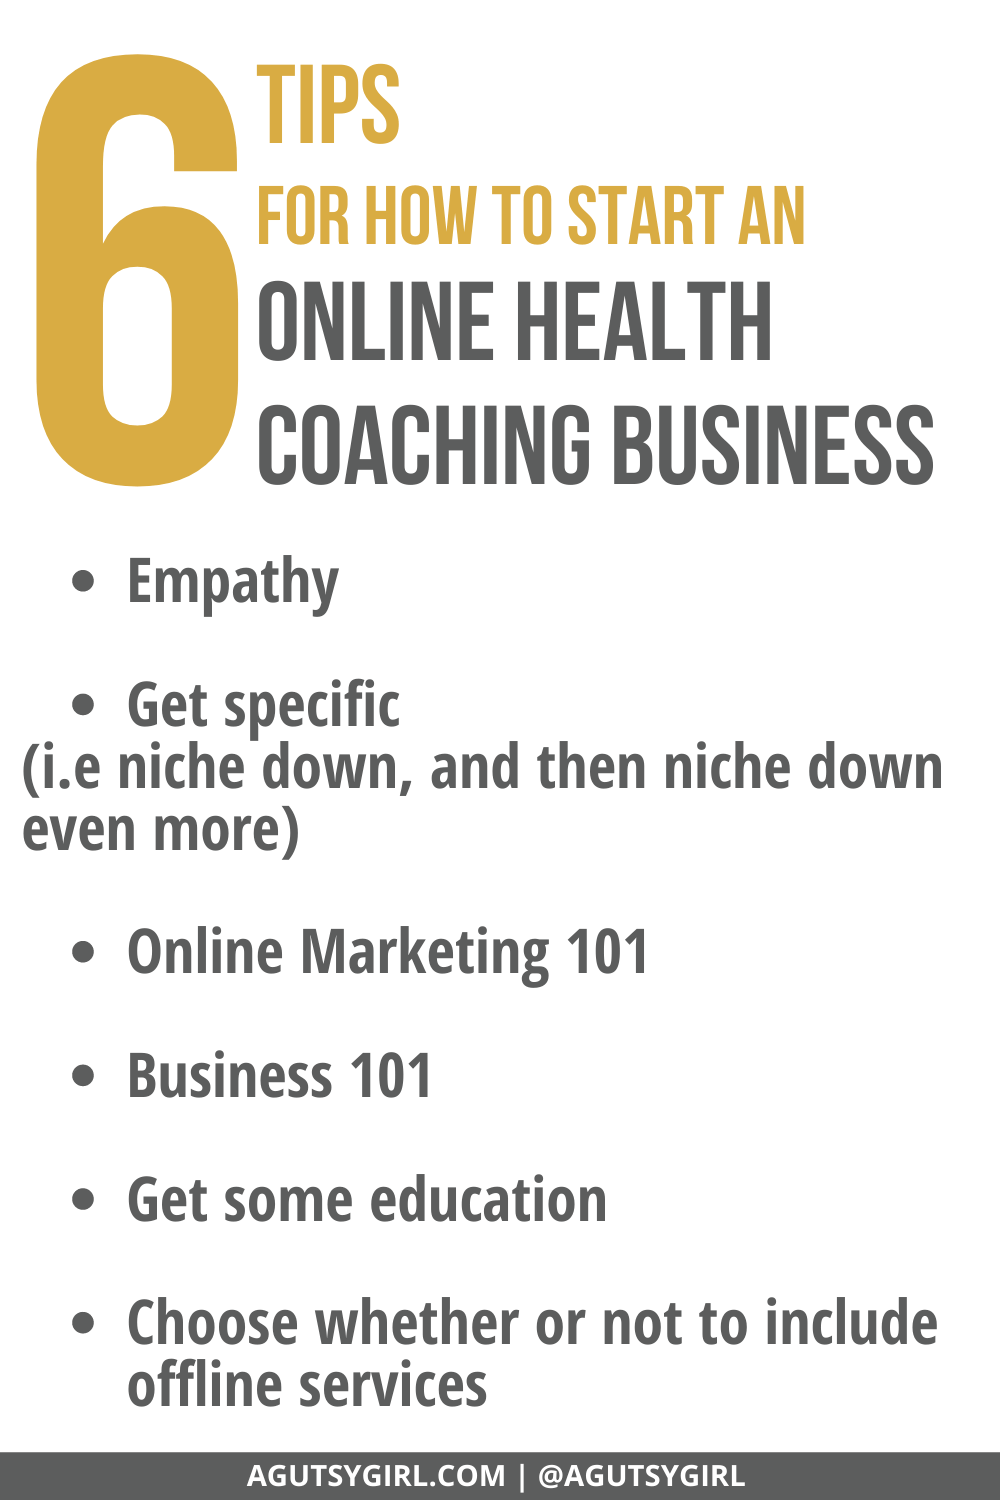 6 Tips for How to Start an Online Health Coaching Business agutsygirl.com #healthcoach #healthcoaching #IIN #onlinebusiness